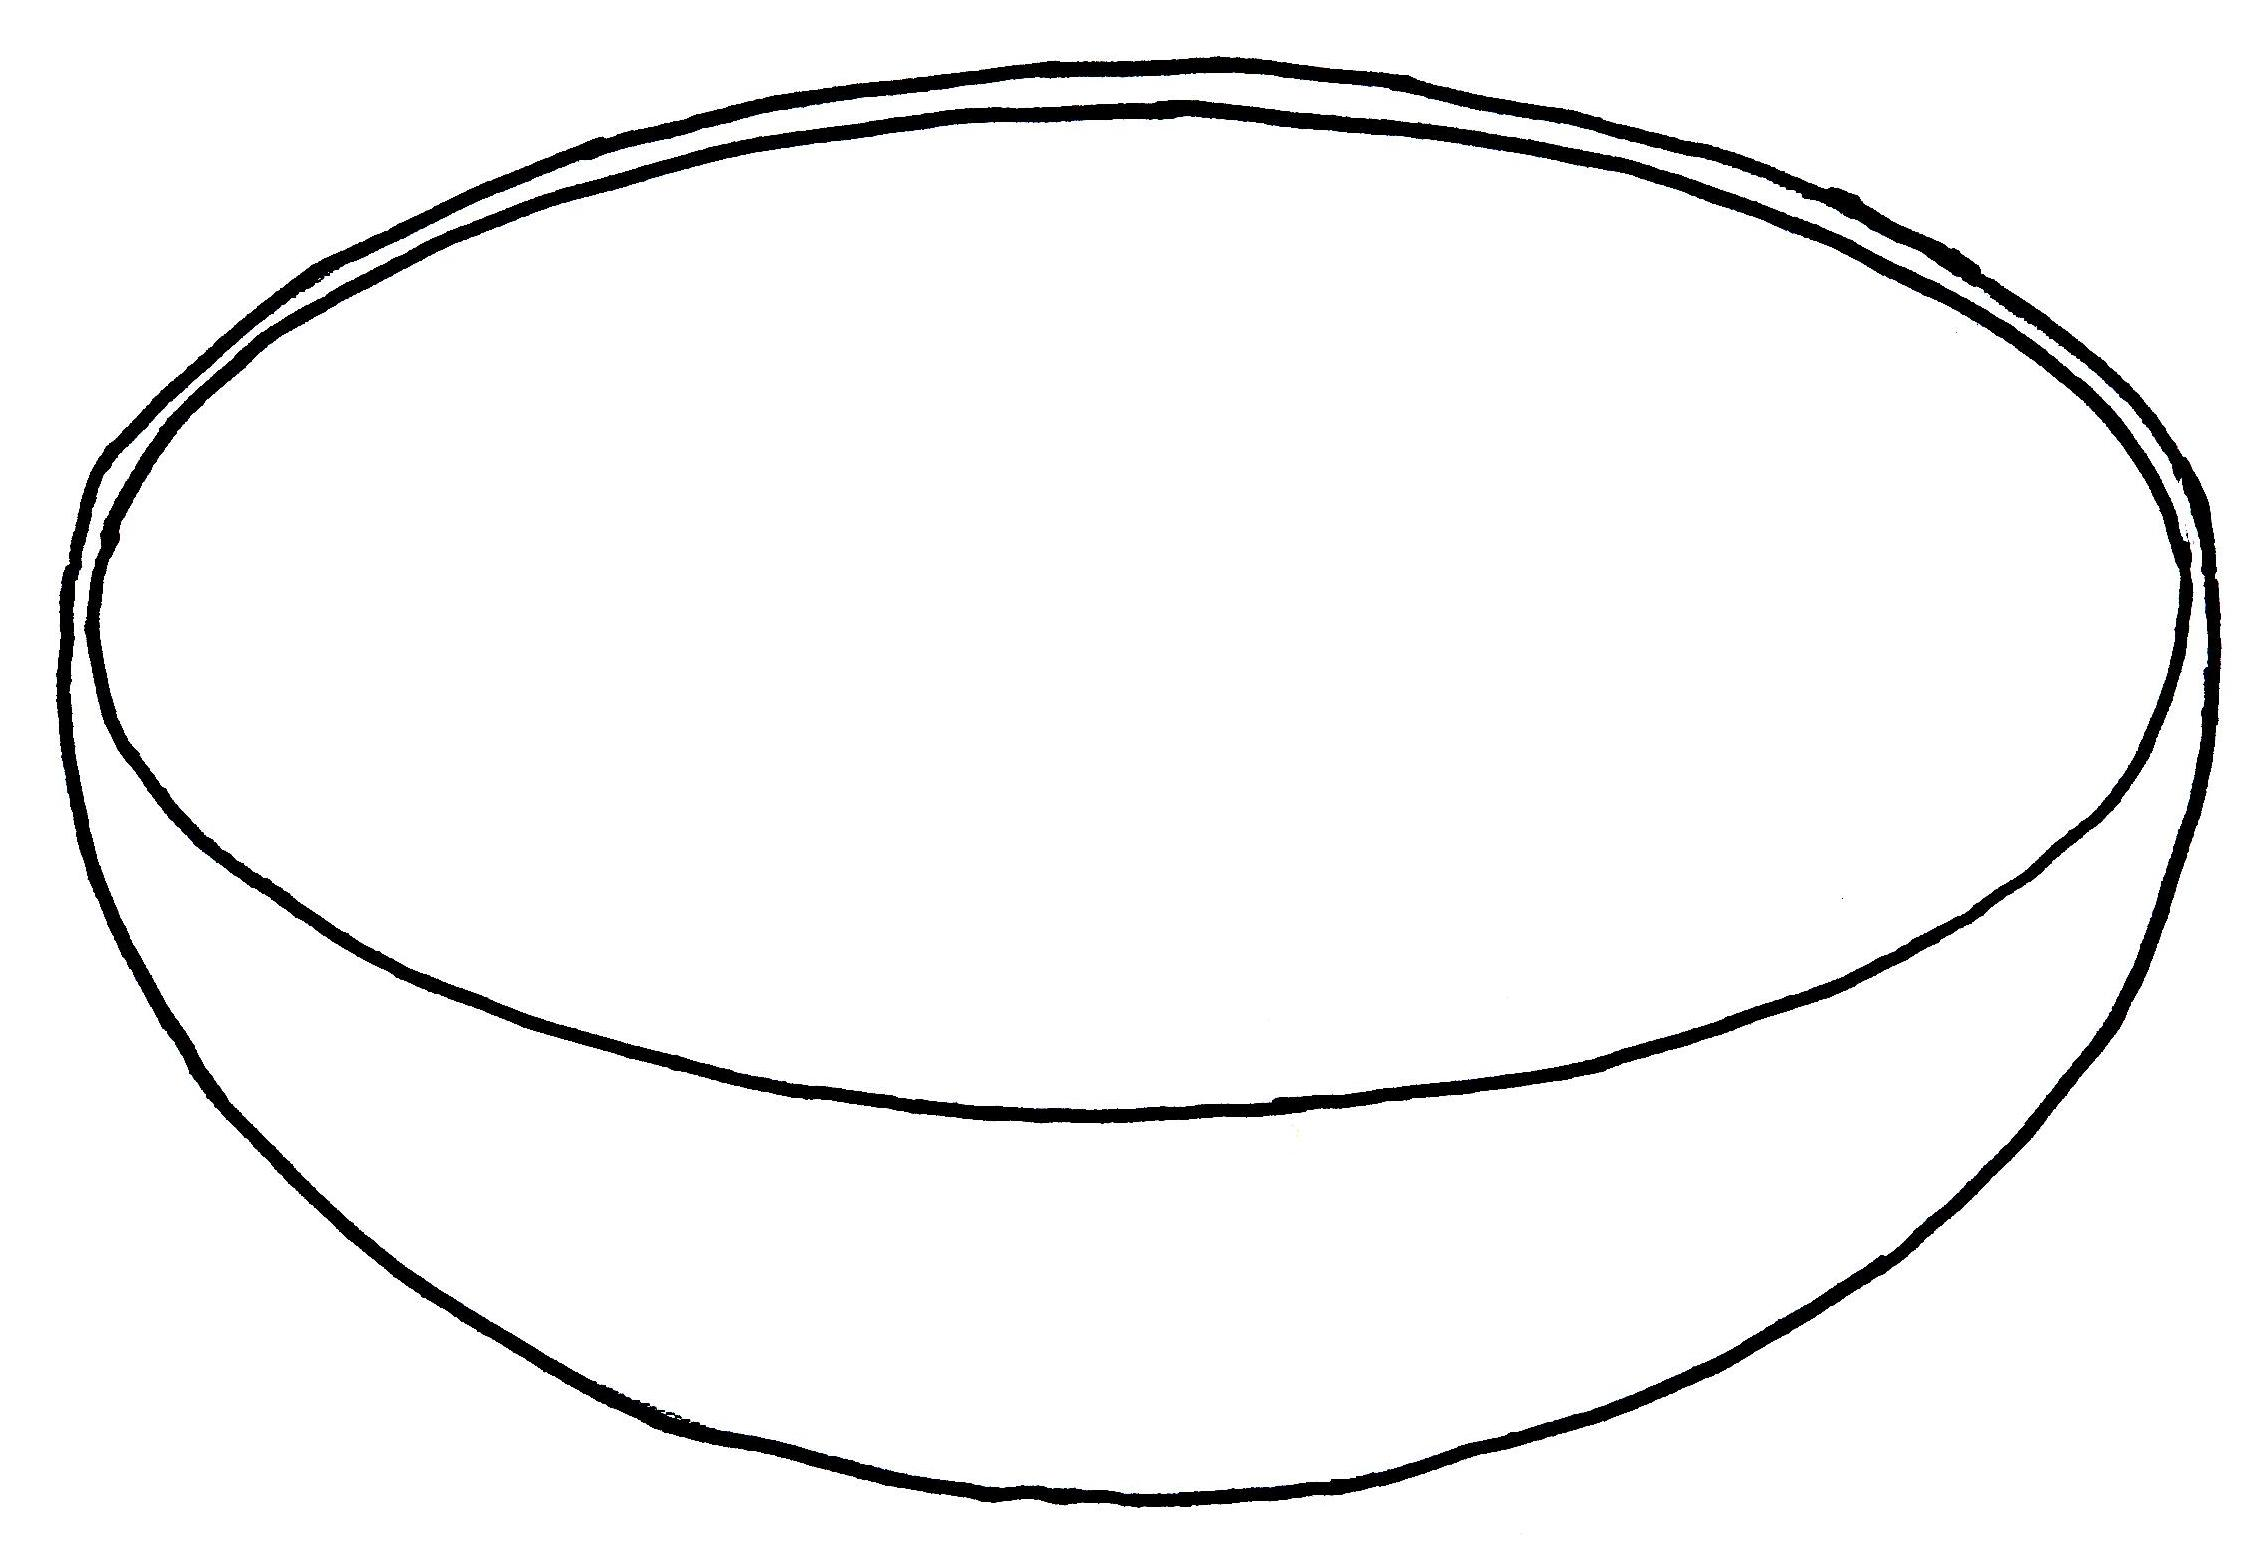 2244x1564 Pictures Of Fruit Basket For Drawing